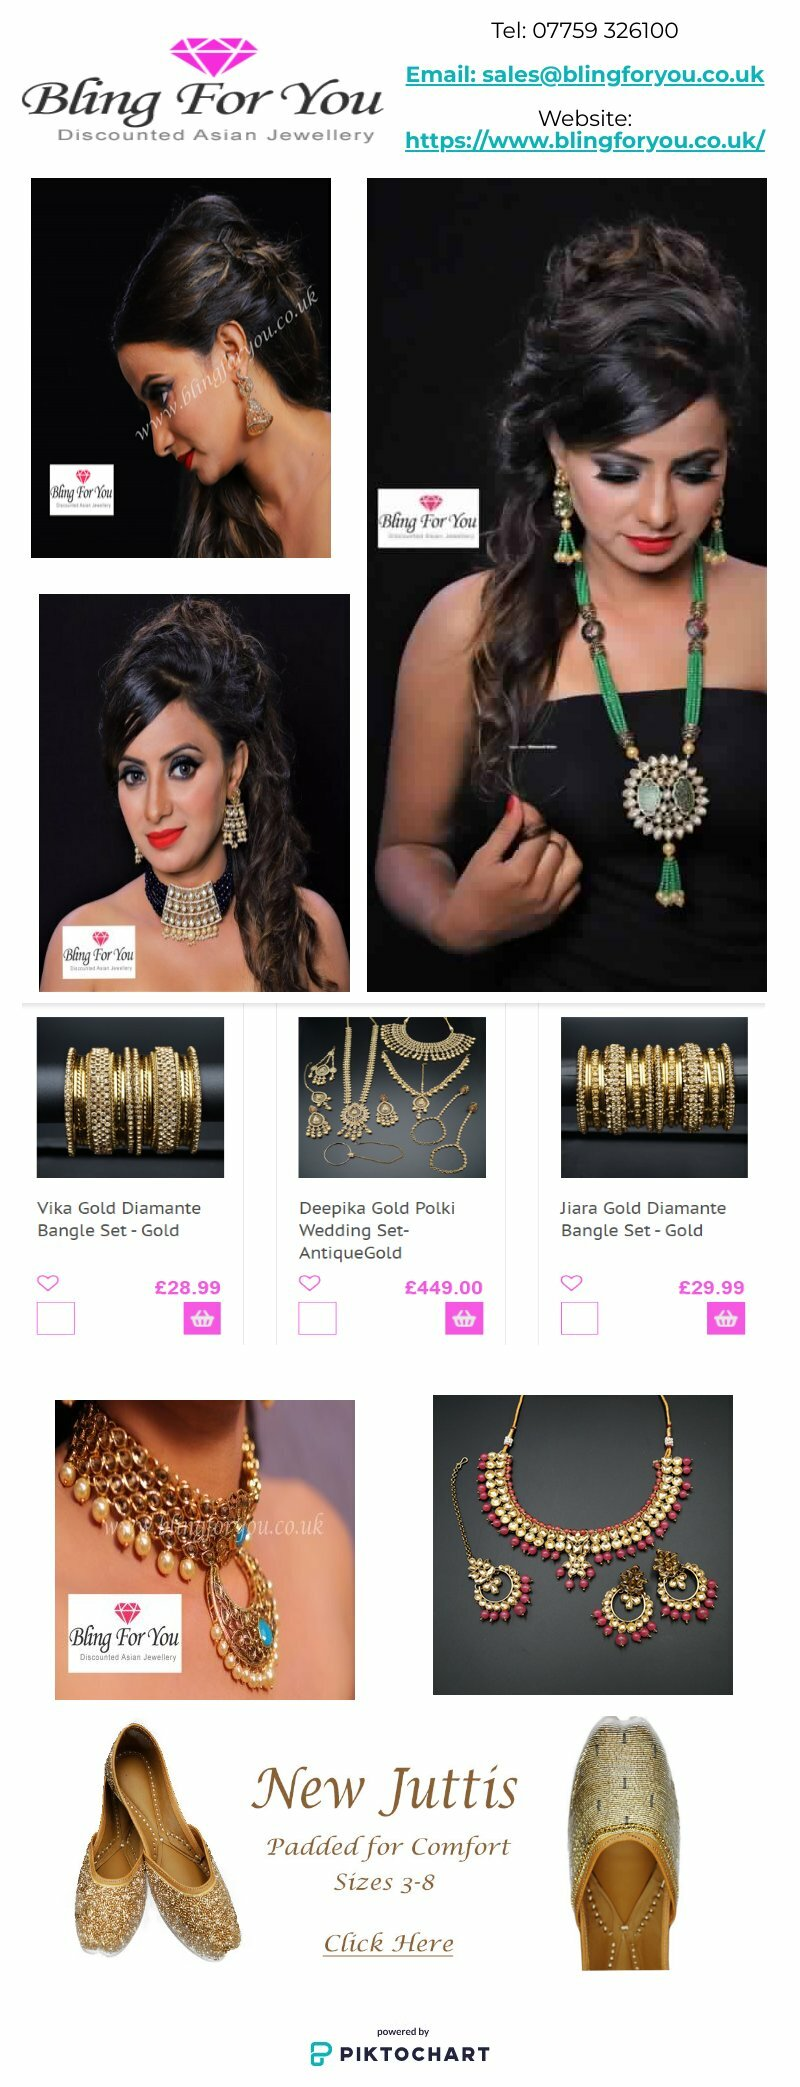 Avail Beautiful Asian wedding jewelry set UK In your Budget